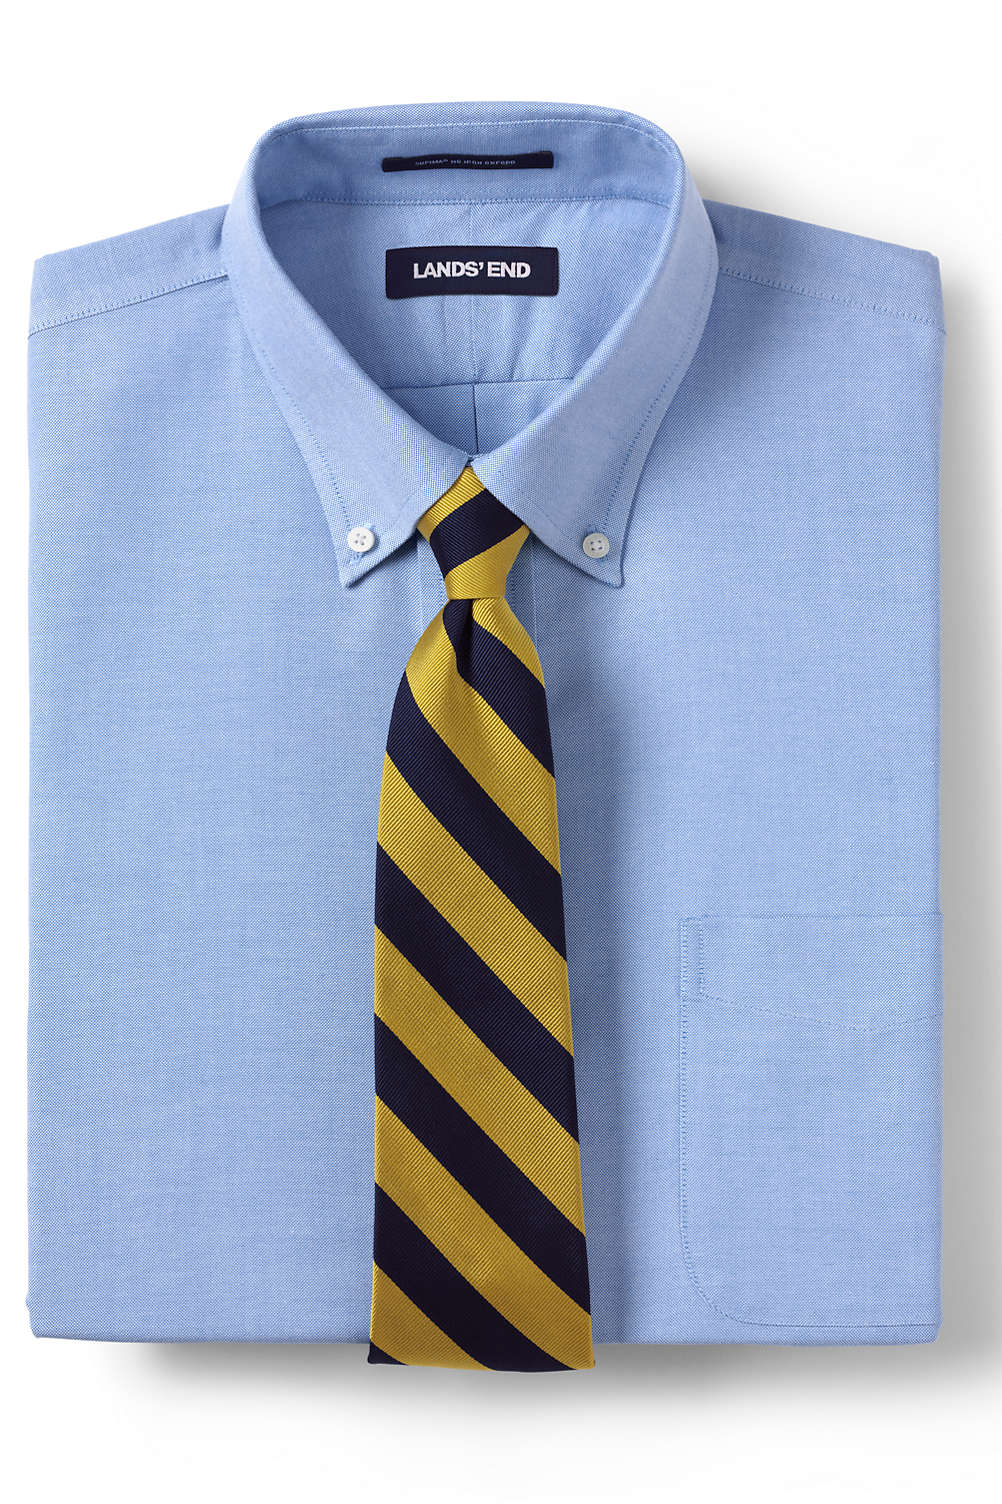 Mens Solid No Iron Supima Oxford Dress Shirt From Lands End